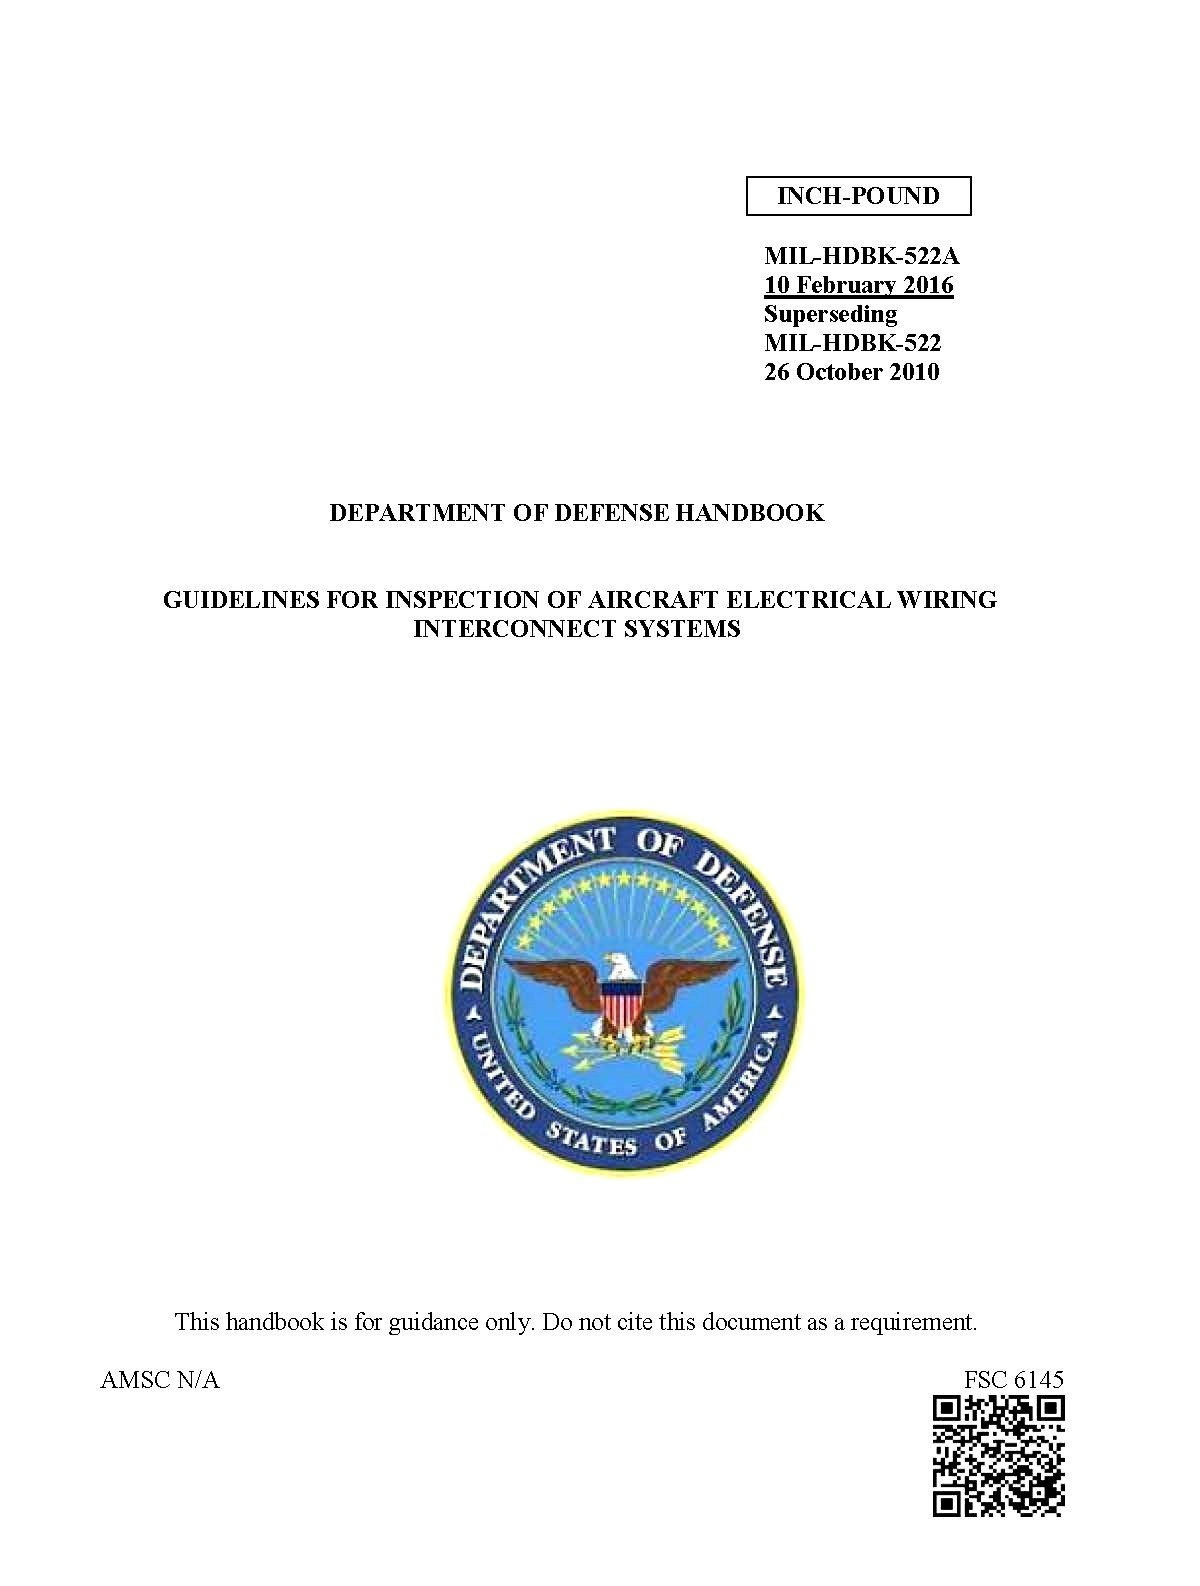 Download MIL-HDBK-522A GUIDELINES FOR INSPECTION OF AIRCRAFT ELECTRICAL WIRING 10 Feb 2016 [Loose Leaf] PDF